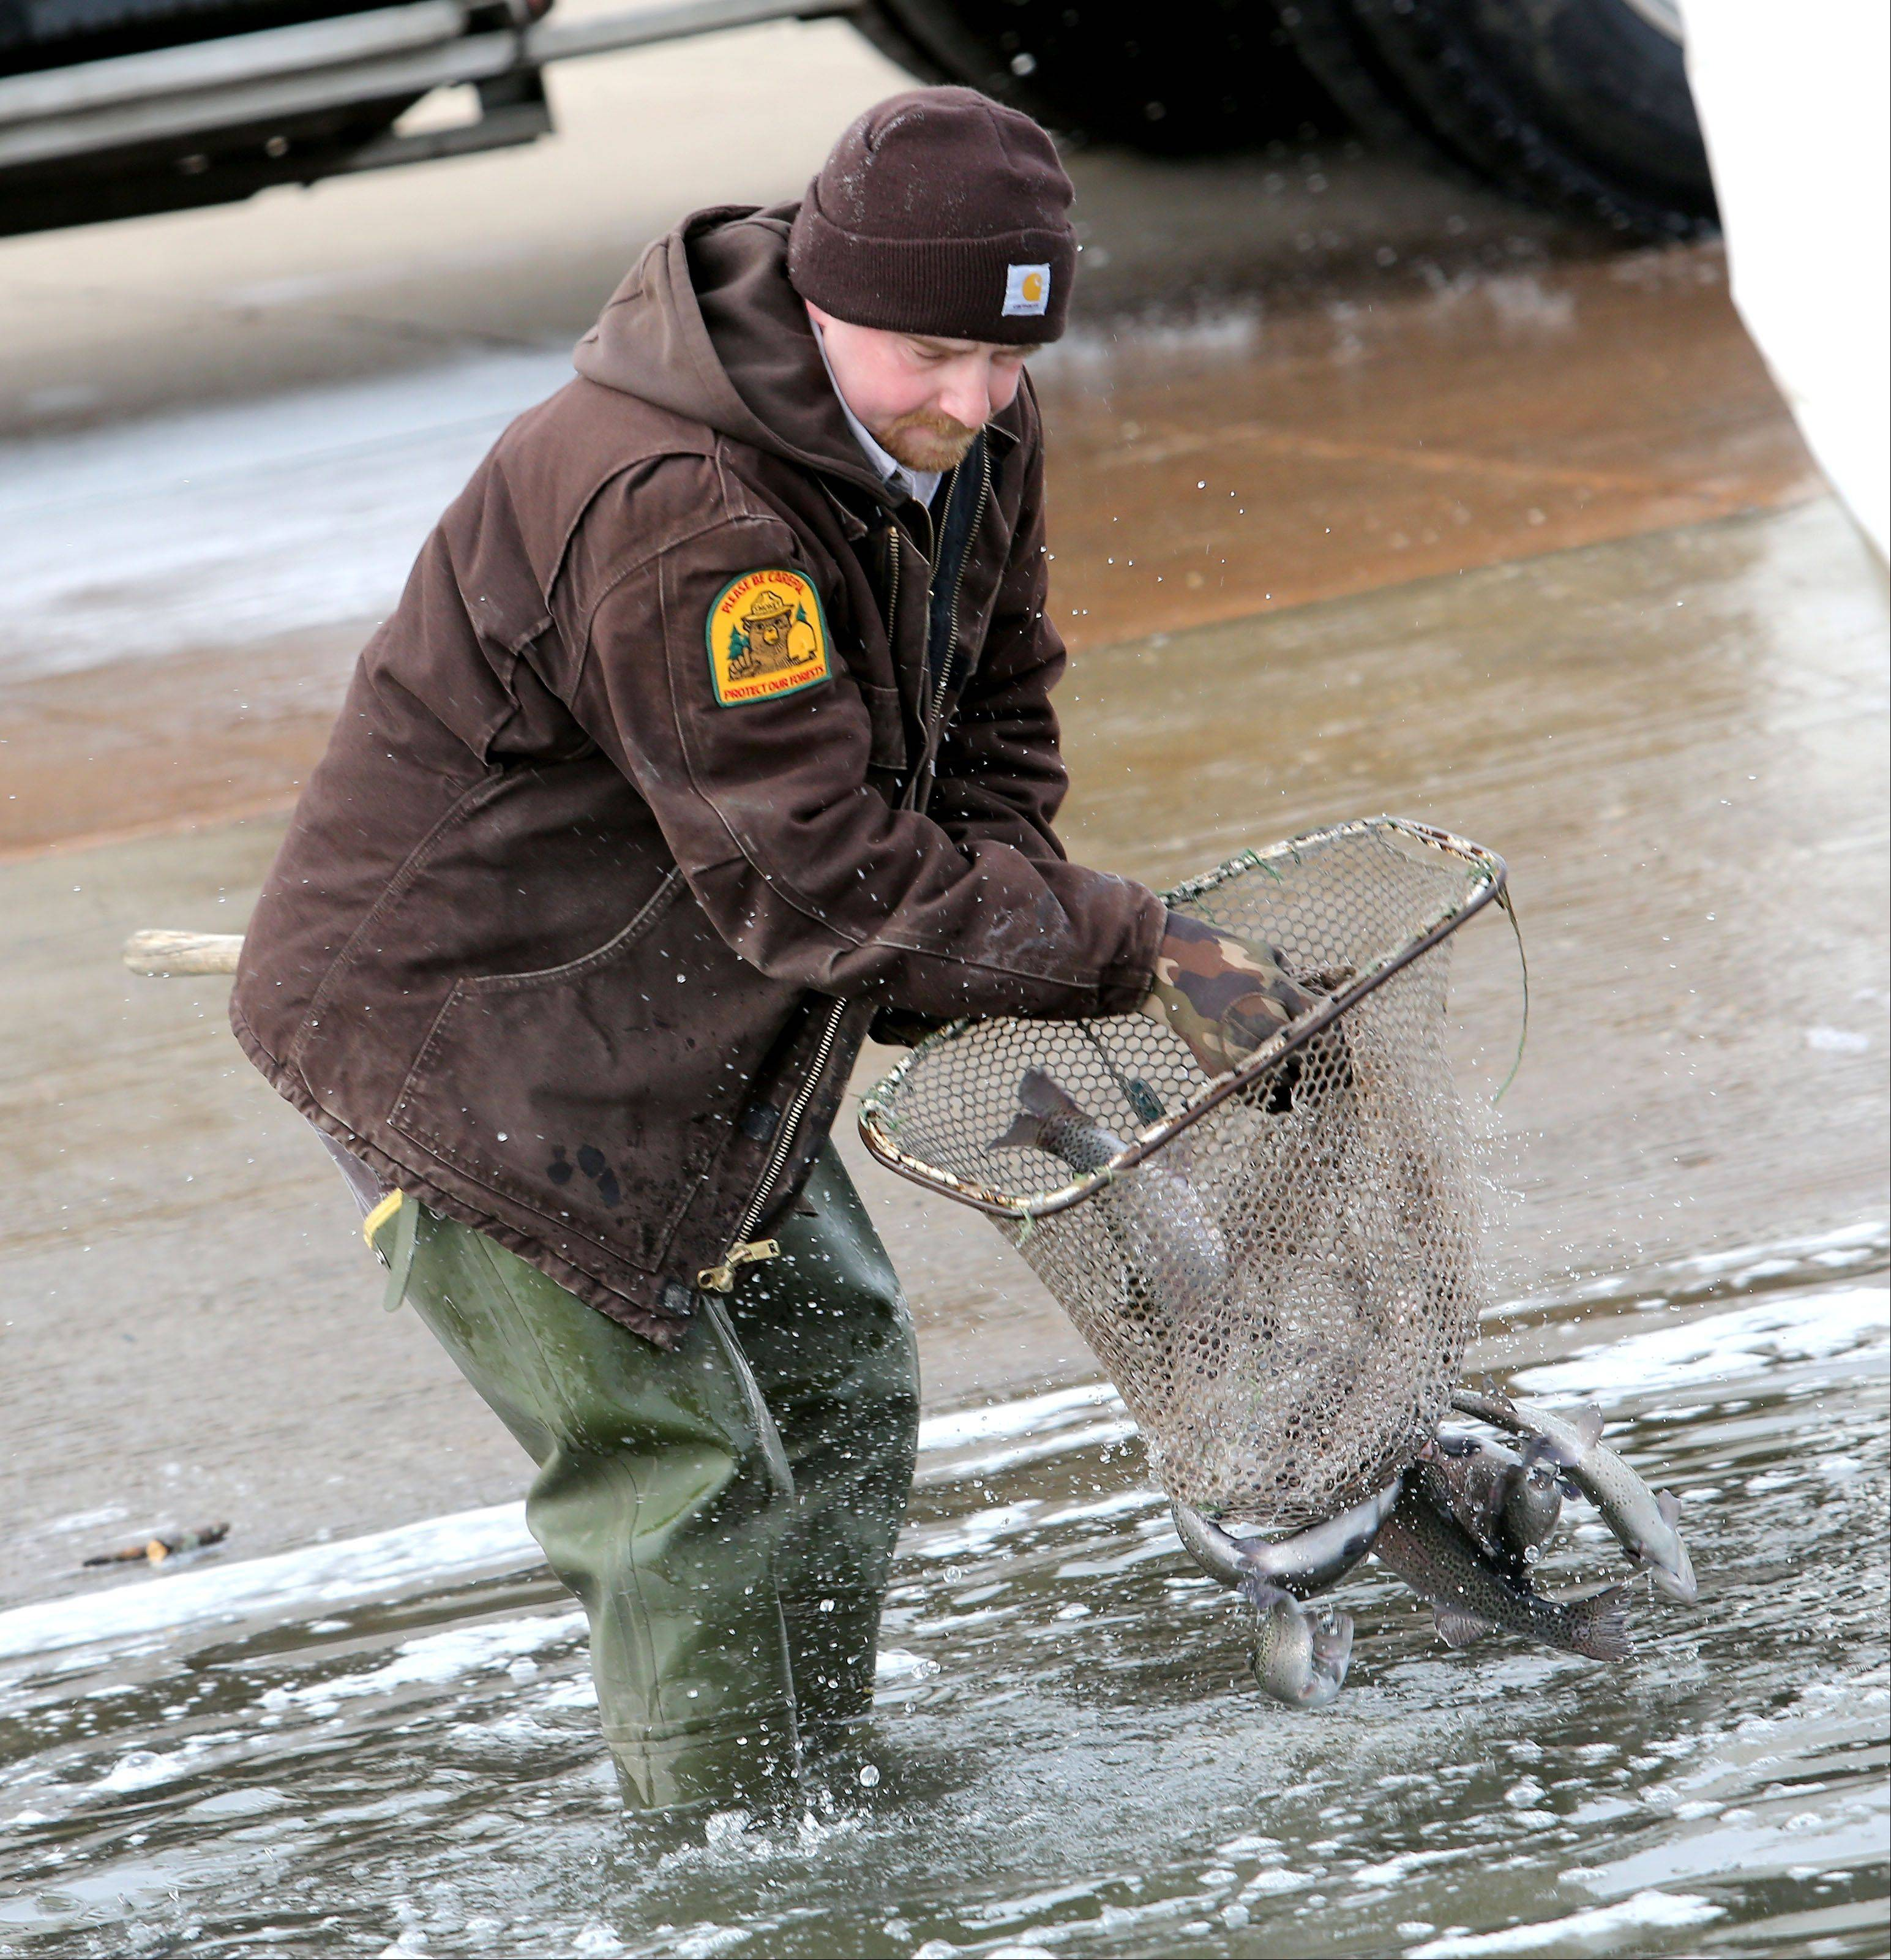 Scott Meister, the DuPage County Forest Preserve District's natural resource management coordinator, uses a net to put a few rainbow trout into Silver Lake at the Blackwell Forest Preserve near Warrenville. The trout fishing season opens at 6 a.m. Saturday.